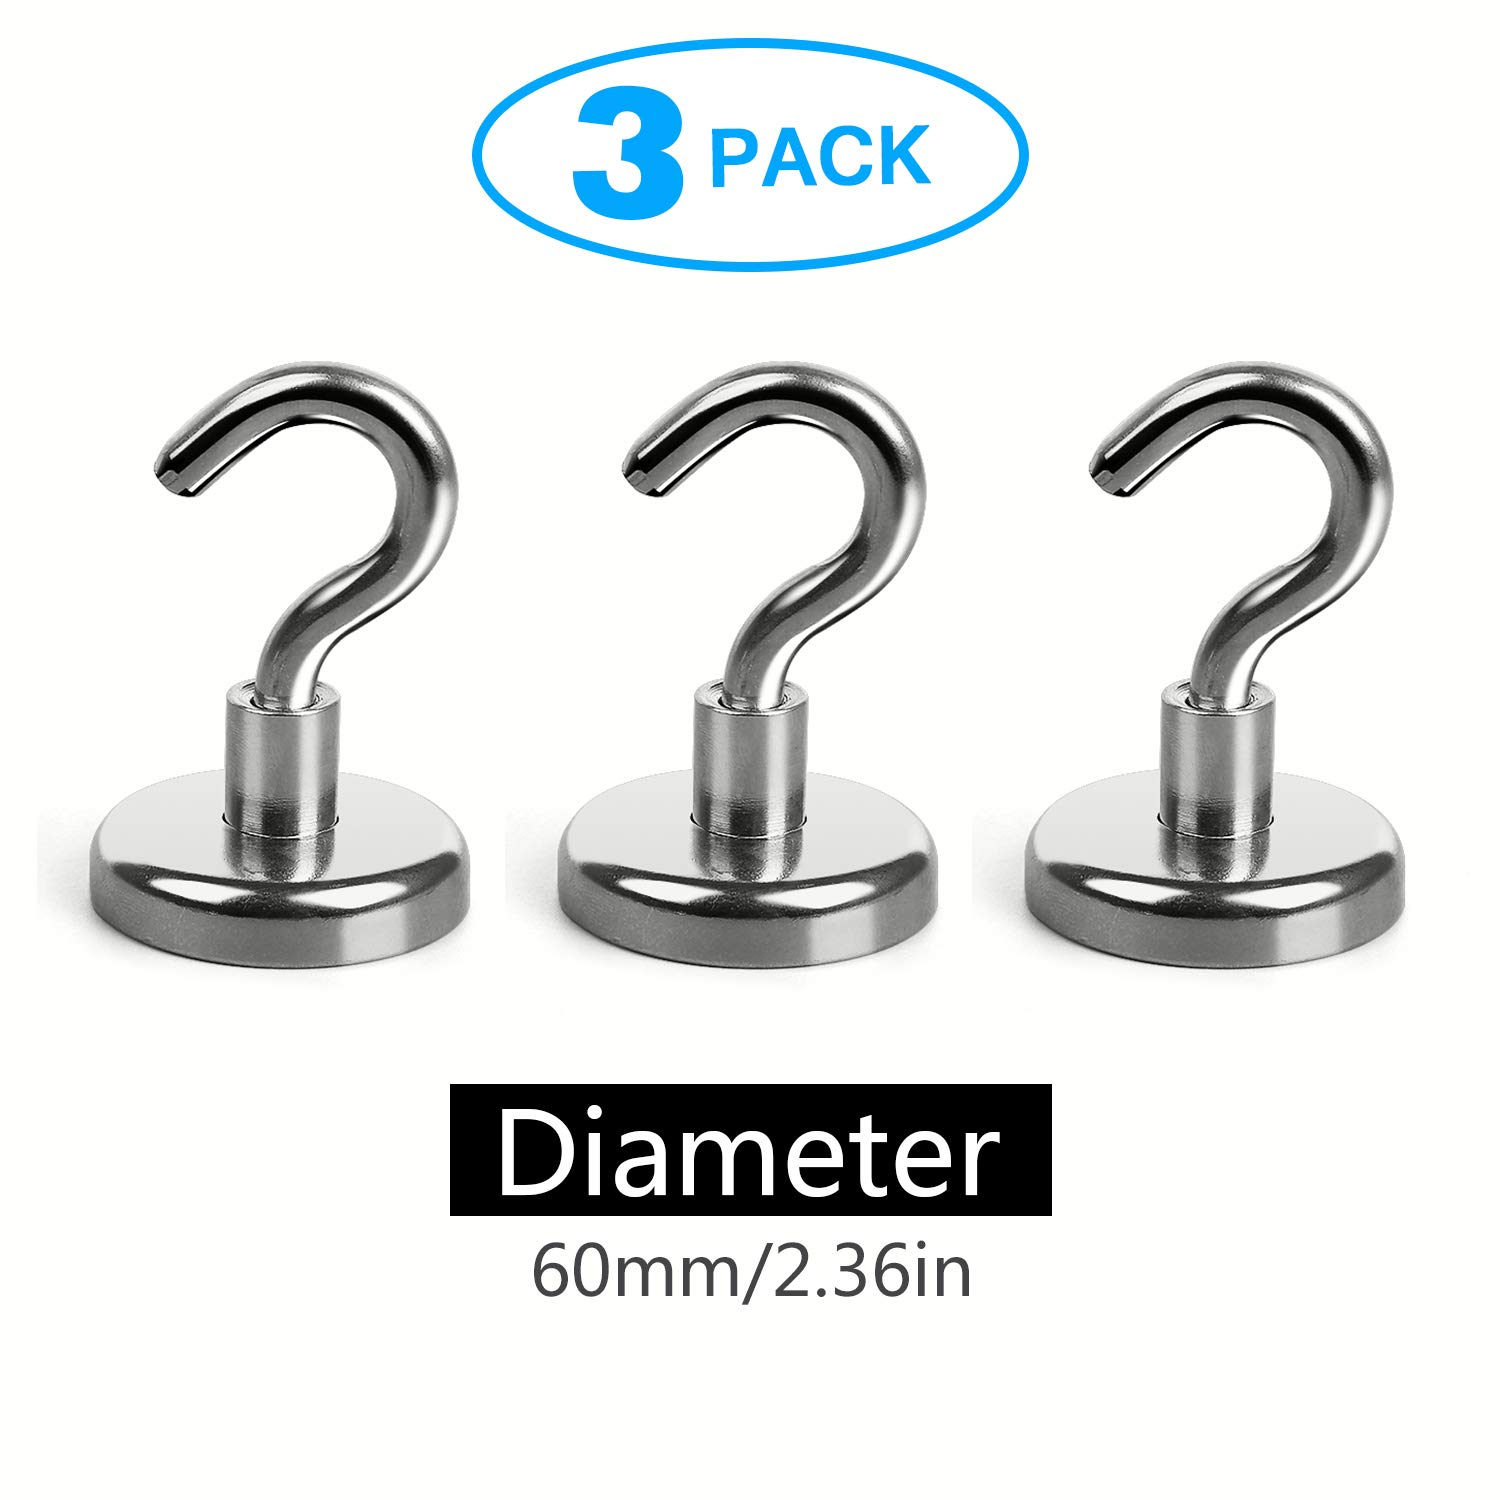 Magnetic Hooks Powerful Neodymium Magnet 3 Hook Set Great for Your Refrigerator and Other Magnetic Surfaces (Diameter : 2.36 INCH-6.0 cm)